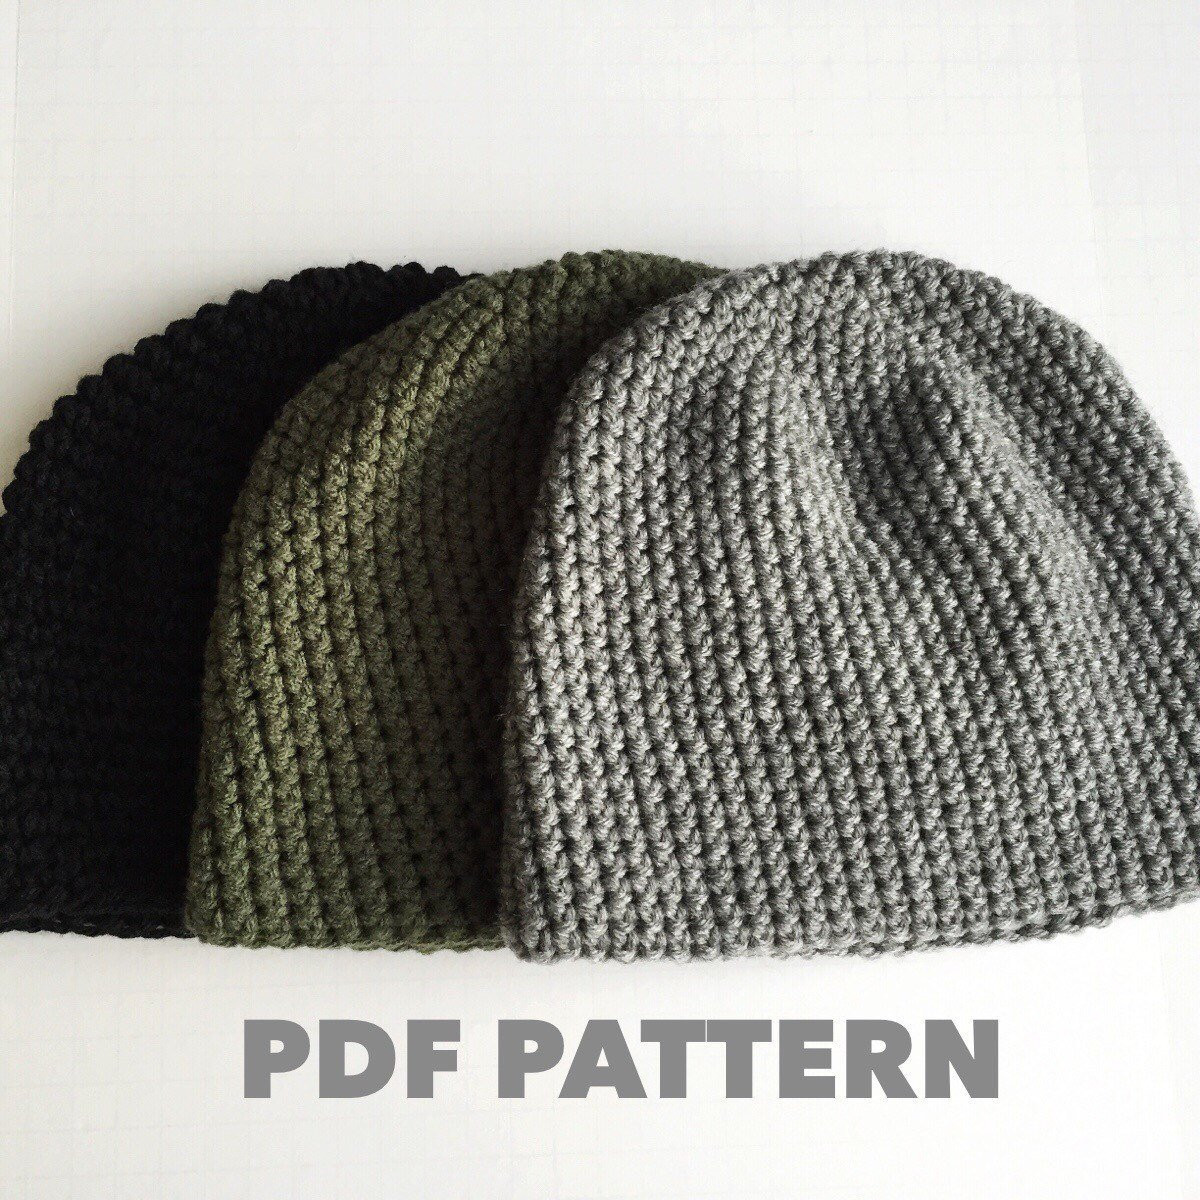 Best Of Pattern Mens Easy Hat Crochet Beanie Seamless Simple Basic Mens Hat Pattern Of Amazing 43 Pictures Mens Hat Pattern